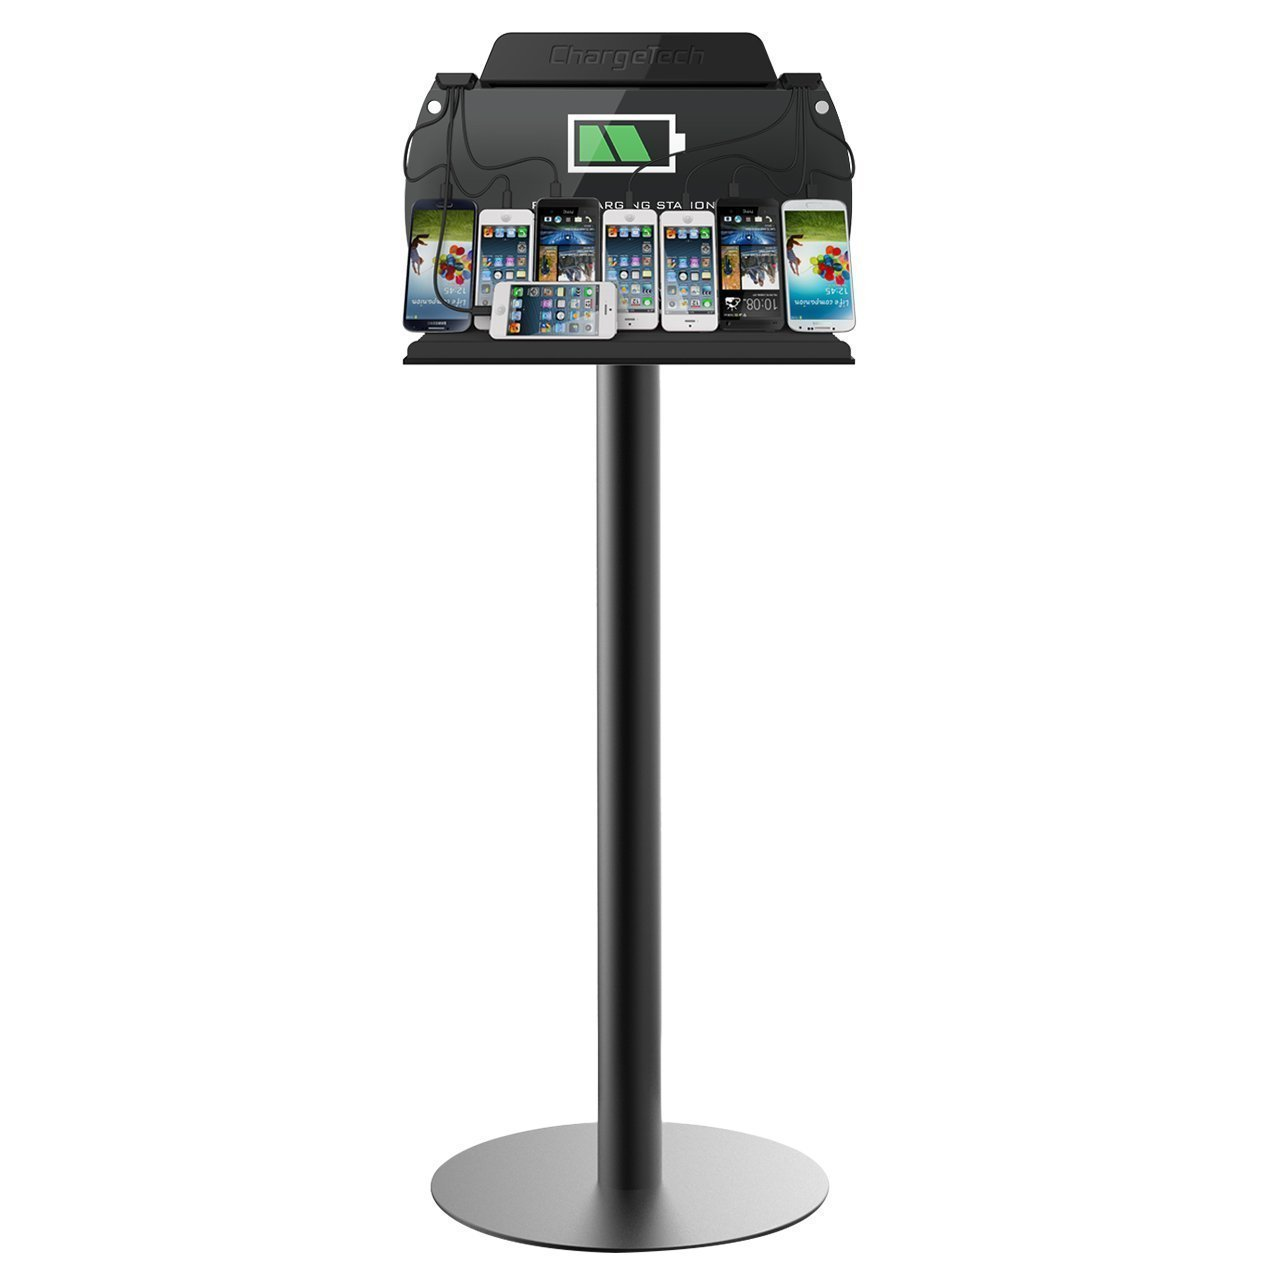 ChargeTech - Tower Floor Stand Cell Phone Charging Station w/ Universal Charging Tips Included - Community Charge Station for all devices: IPhone, Samsung Galaxy - For Businesses, Events (Model: S9)